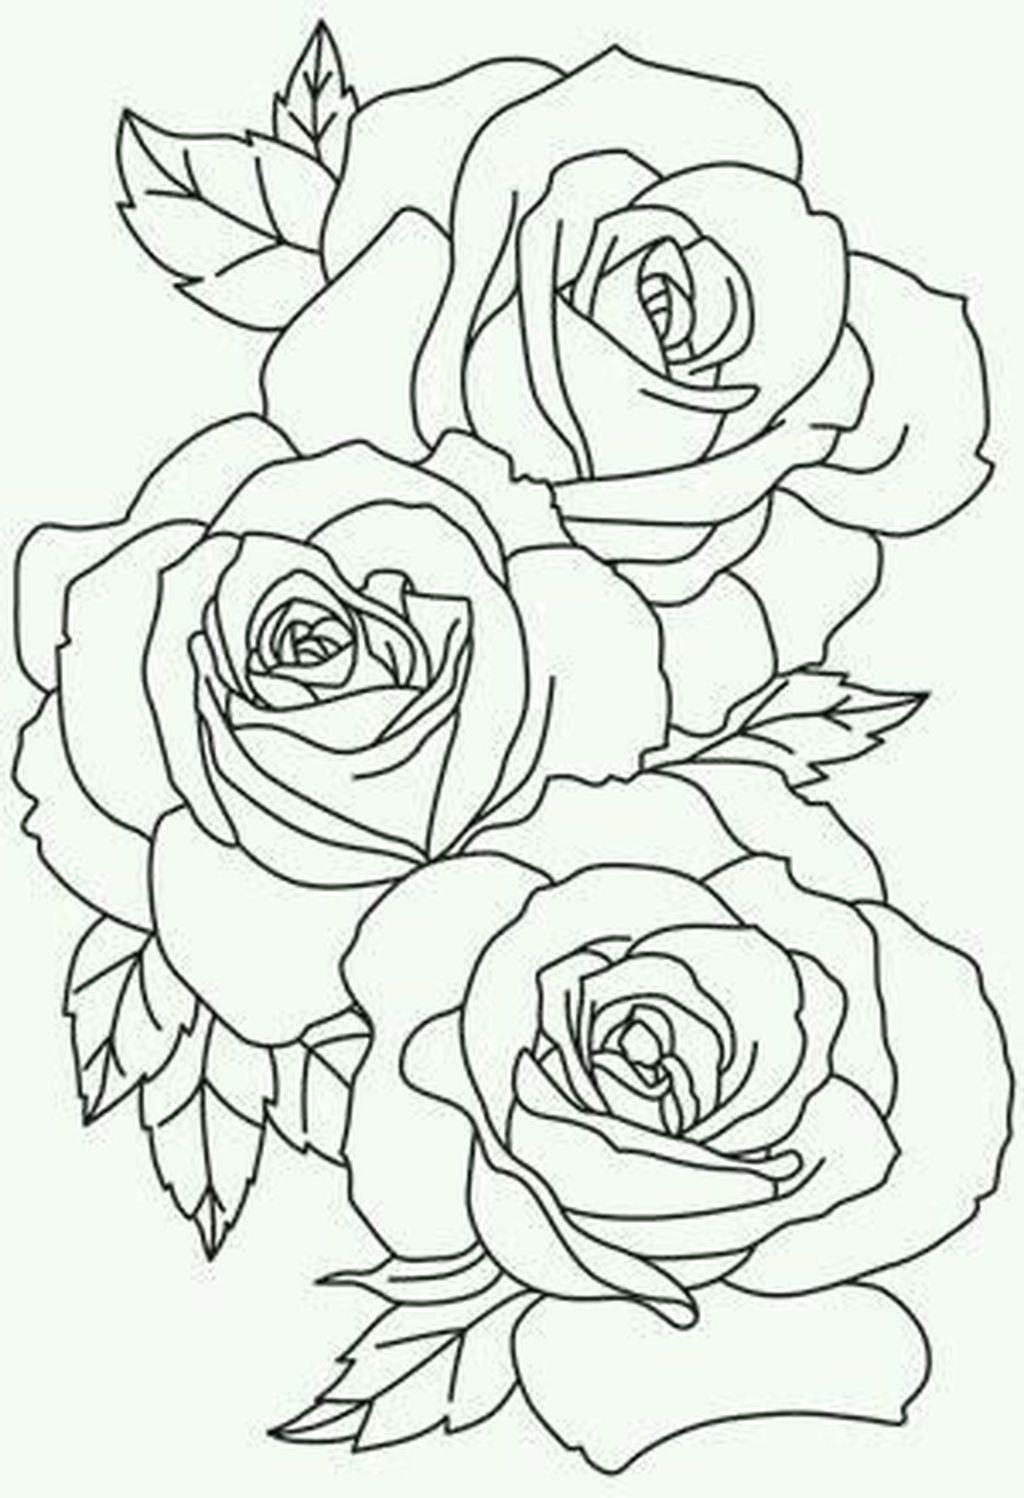 50 Awesome Flower Tattoos Ideas For Valentines Day стежка розы